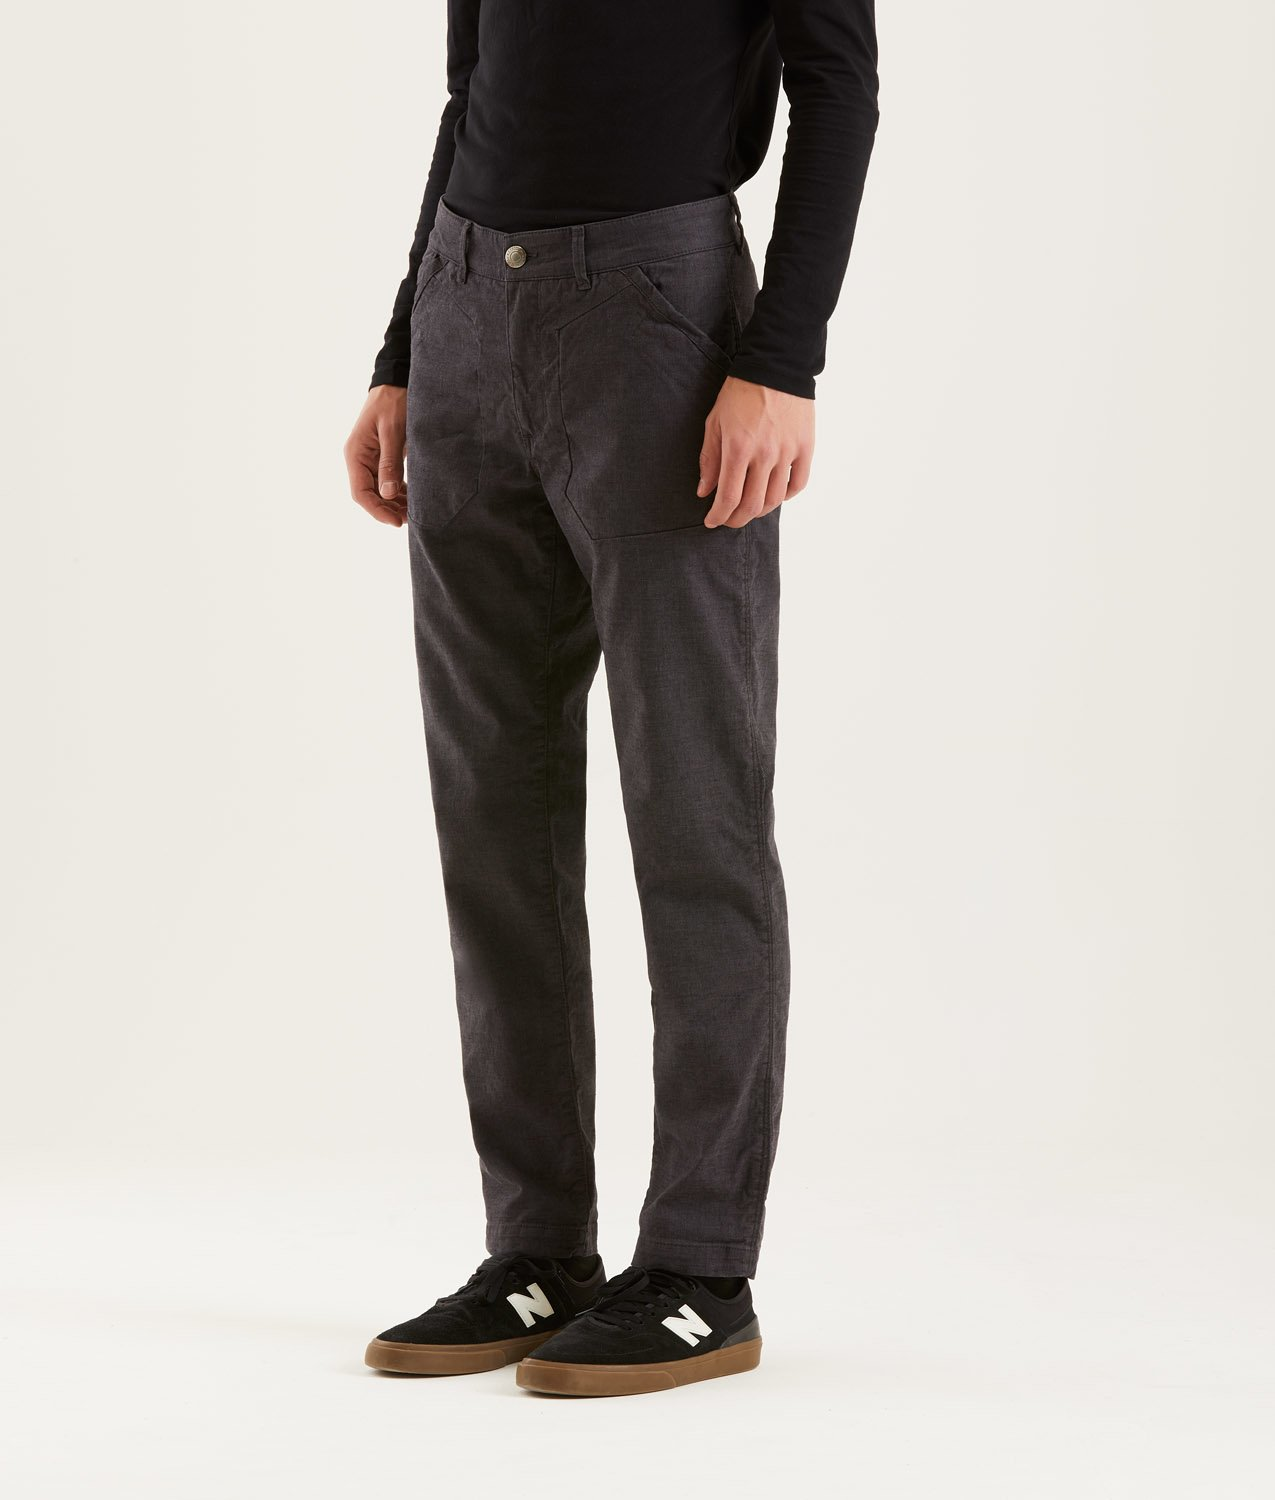 SANFORD/1 TROUSERS